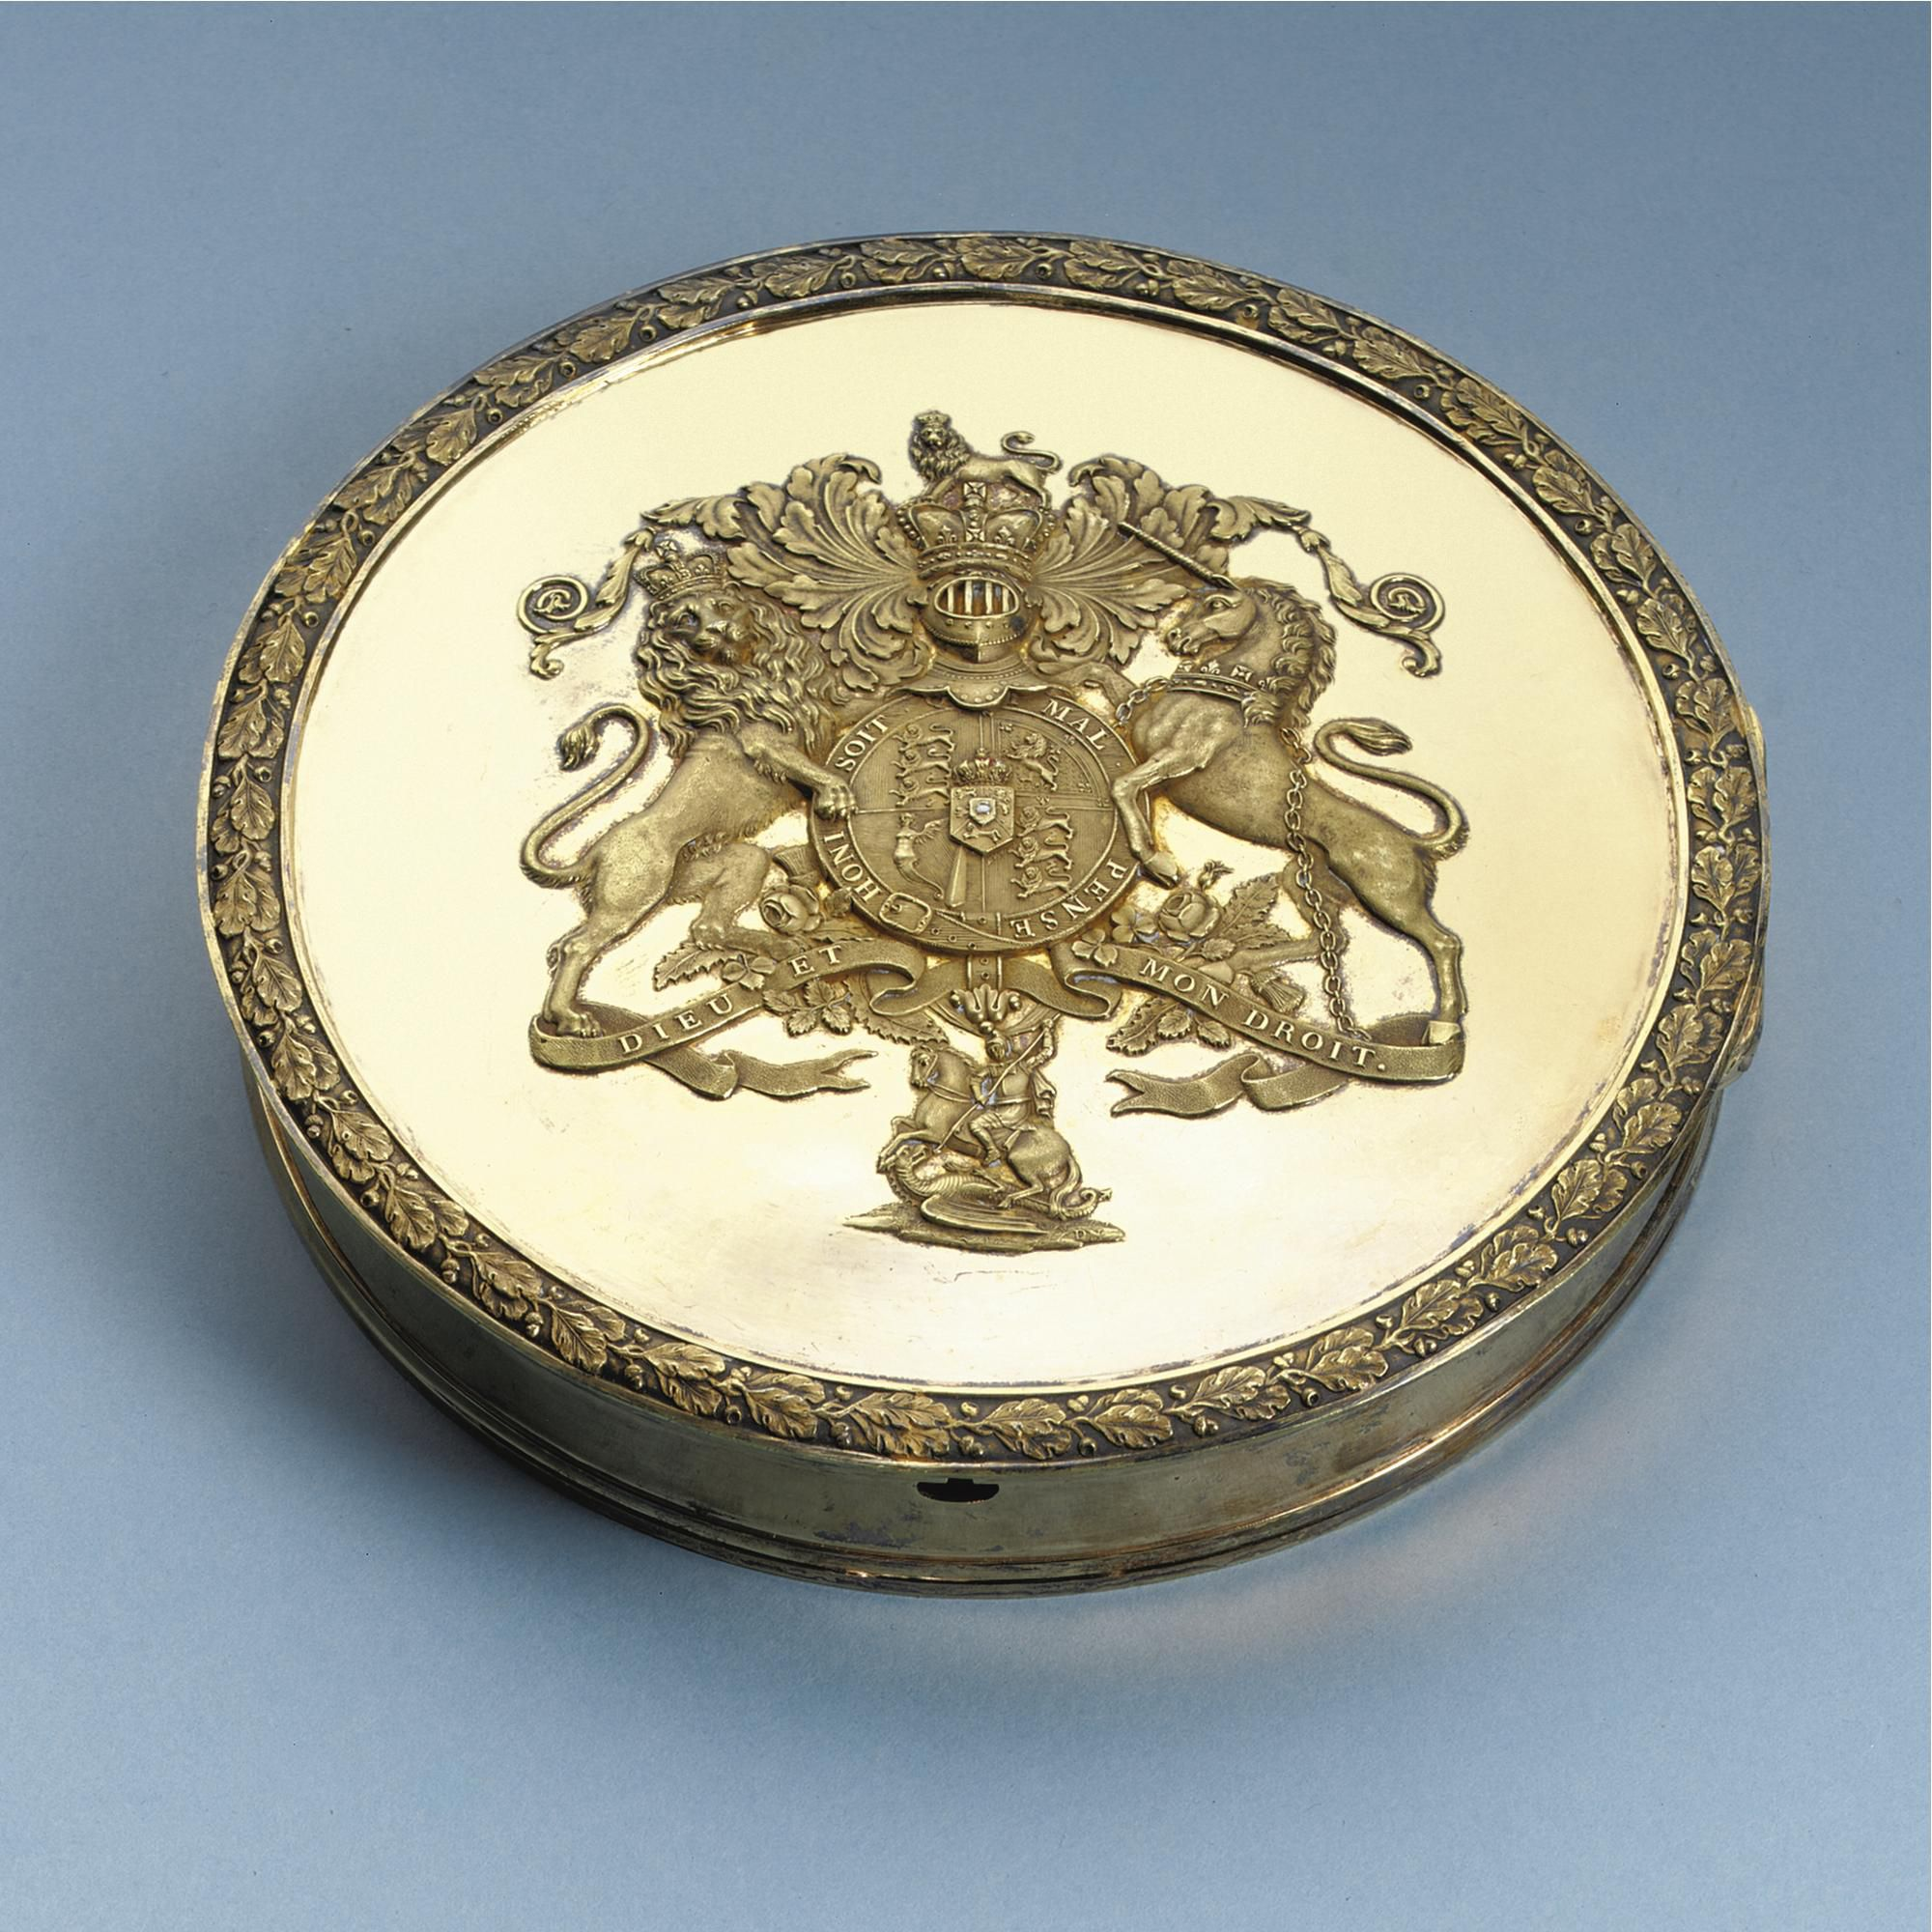 A Regency Royal Silver-gilt Seal Box, Paul Storr, London, 1817 of shallow drom form, the hinged cover embossed with the Royal Arms within a border of running oak leaves and acorns, marked on base and cover diameter 6 3/4in.